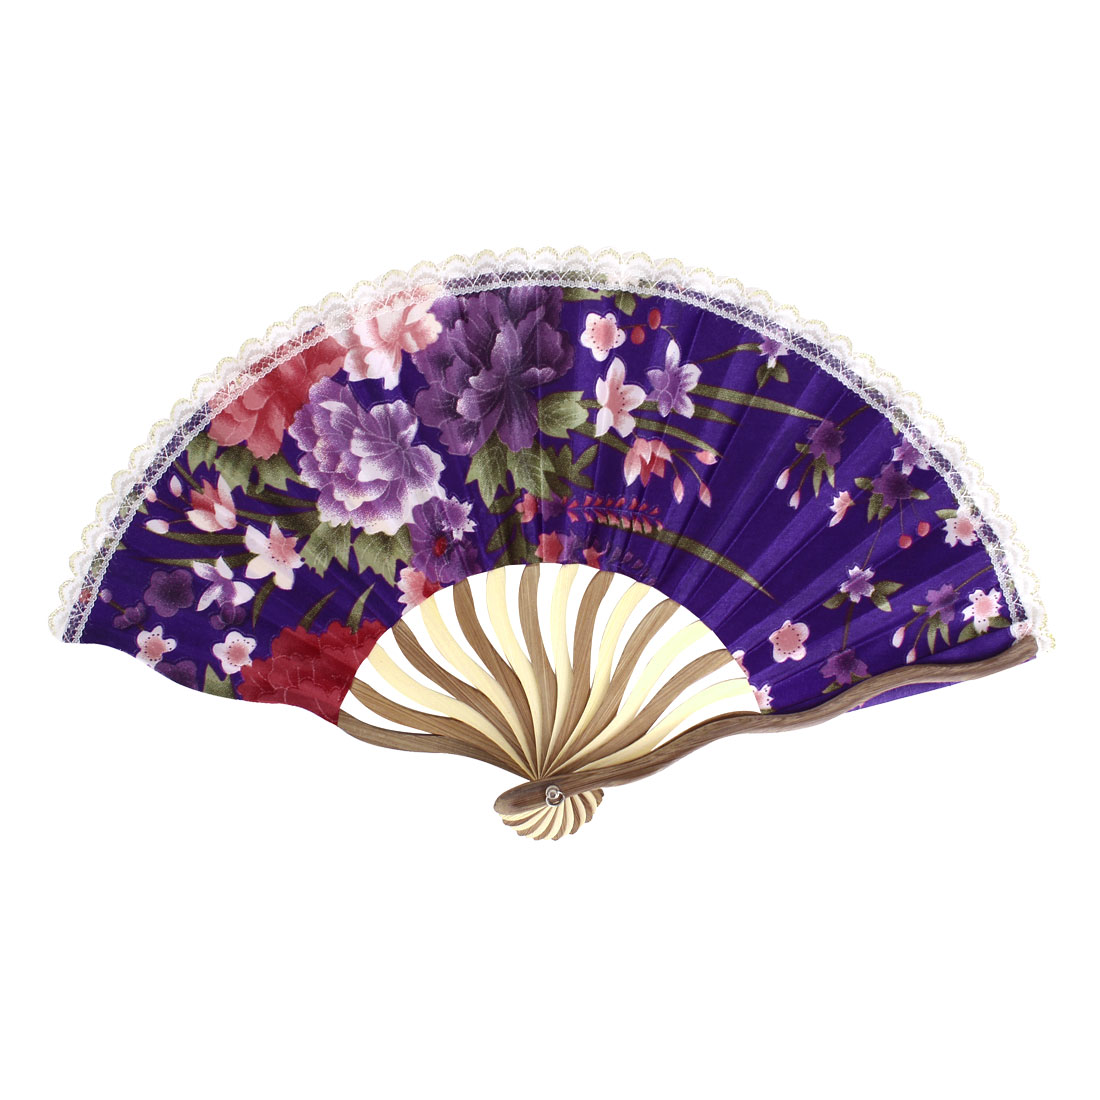 Wood Frame Flowers Pattern Lace Rim Dancing Party Folding Hand Fan Purple